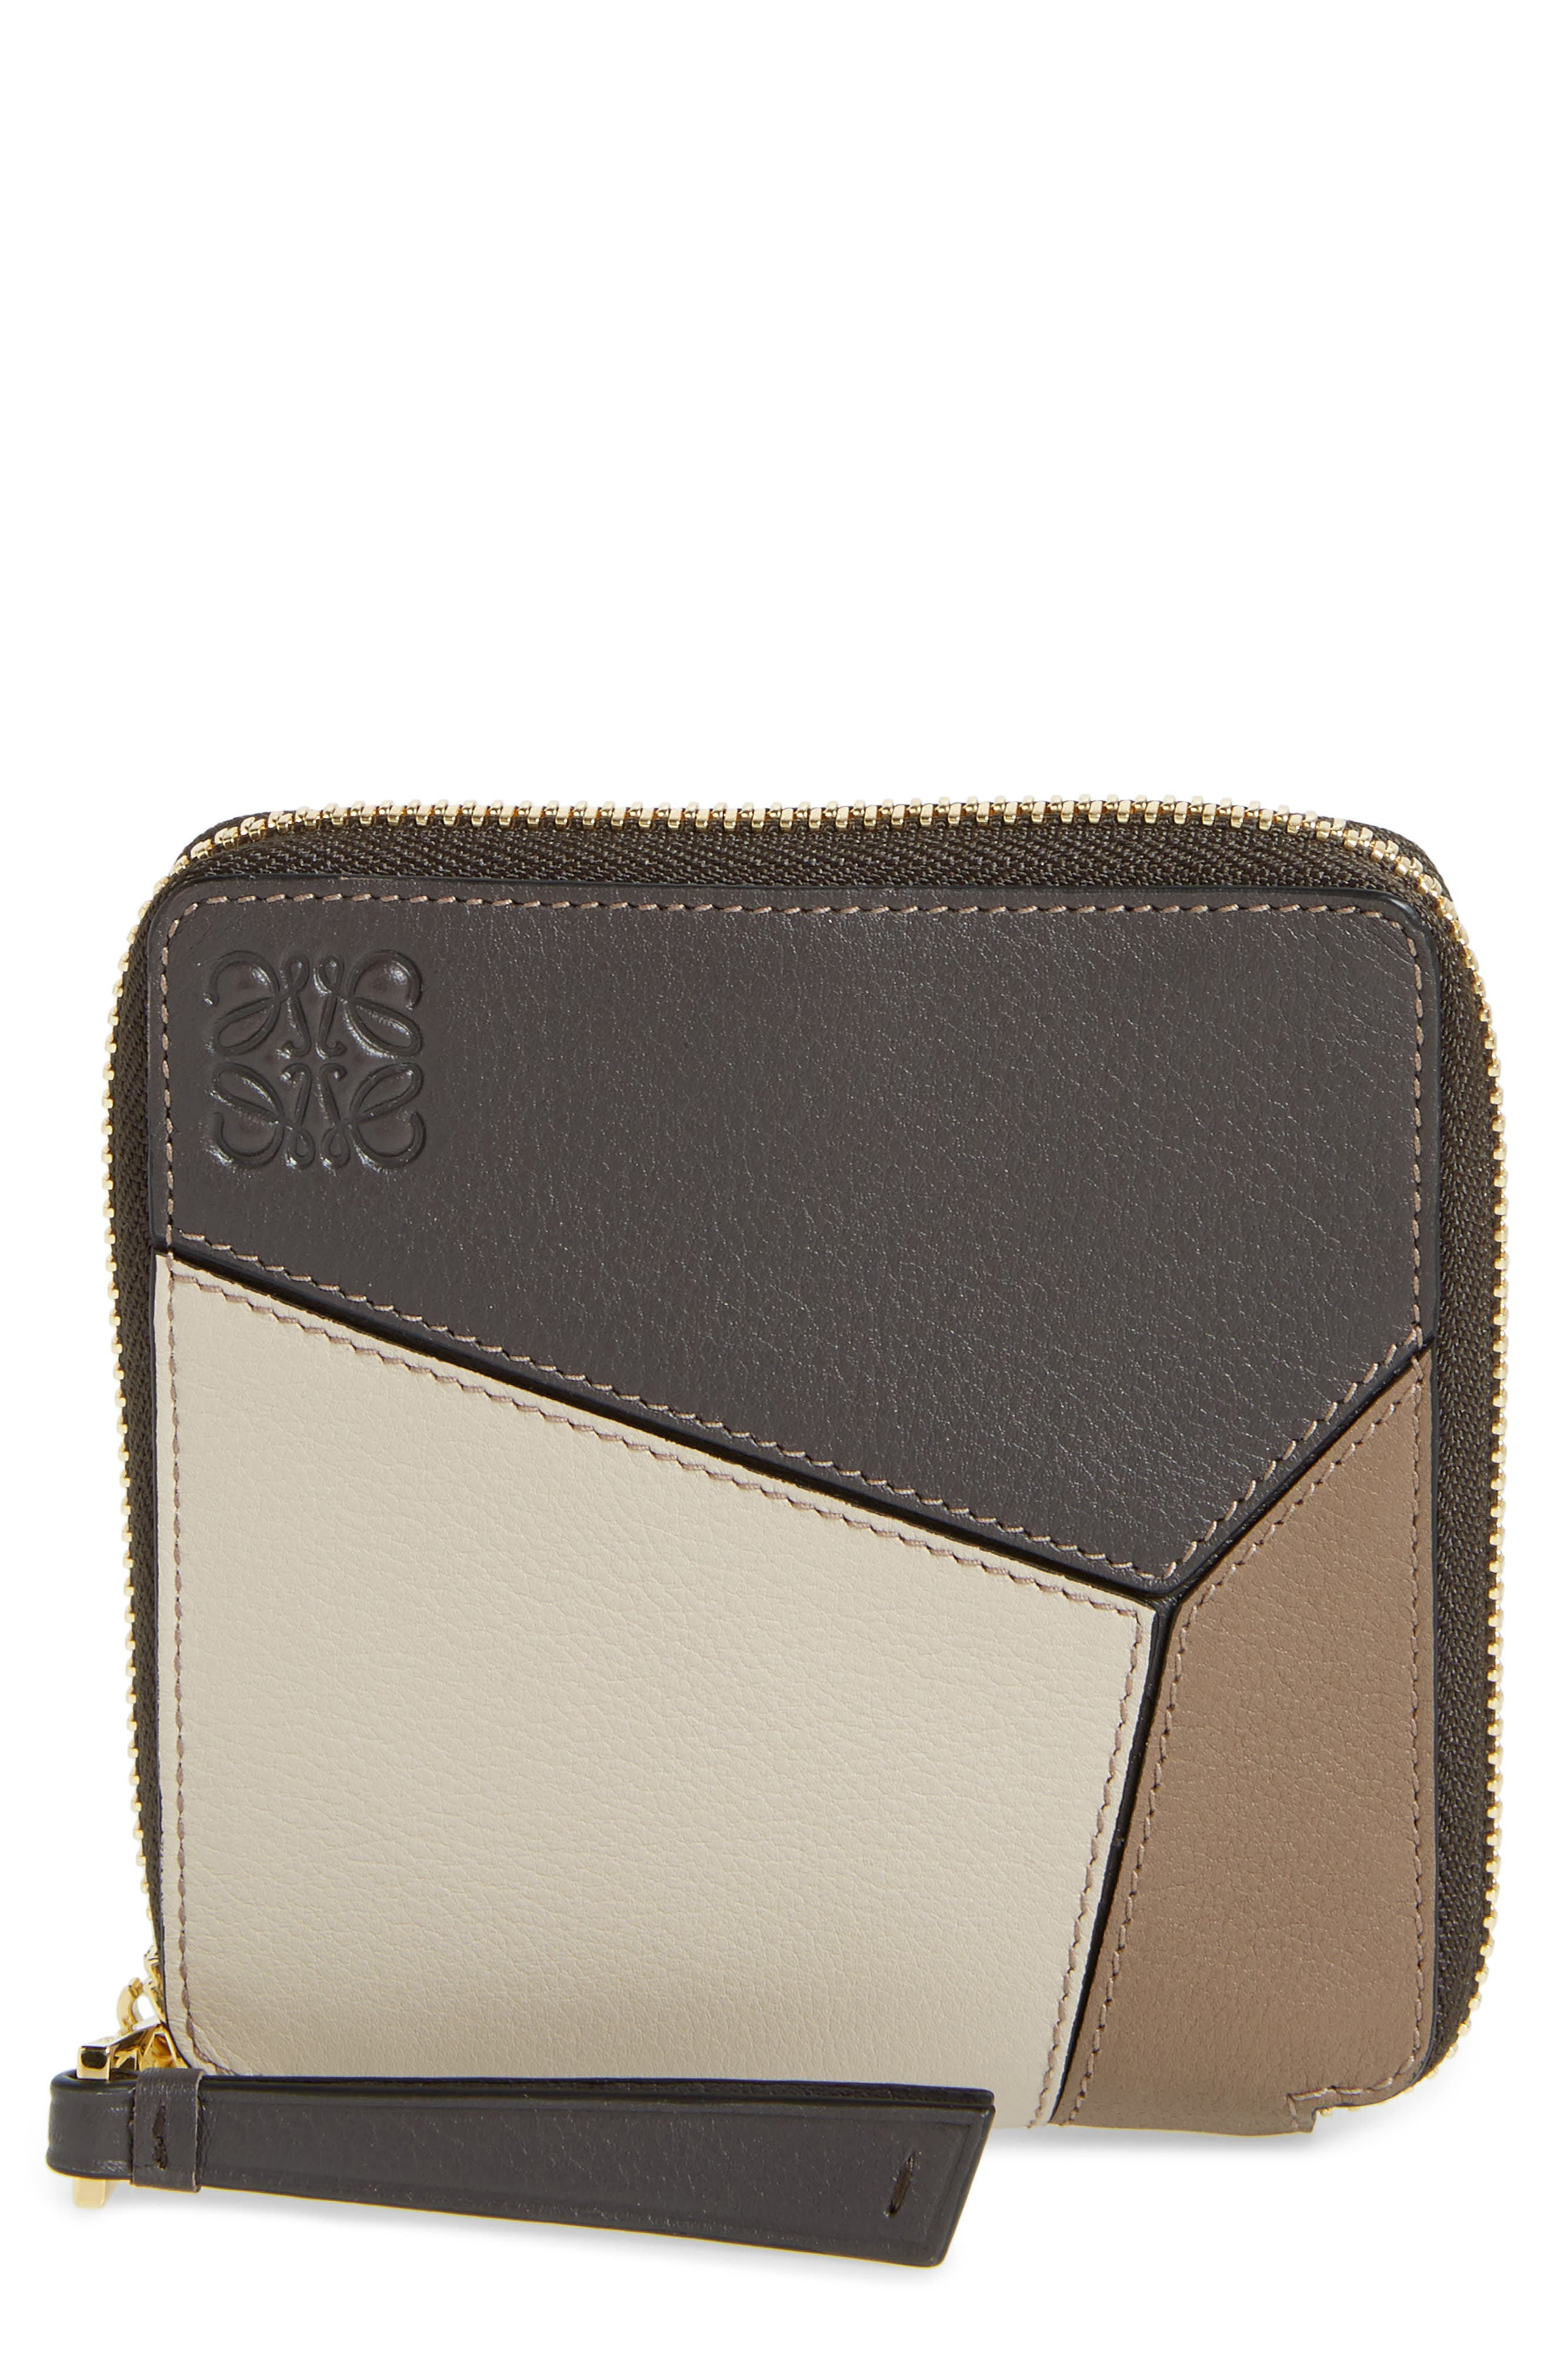 Denim Puzzle Colorblock Leather French Wallet,                         Main,                         color, Dark Taupe Multitone